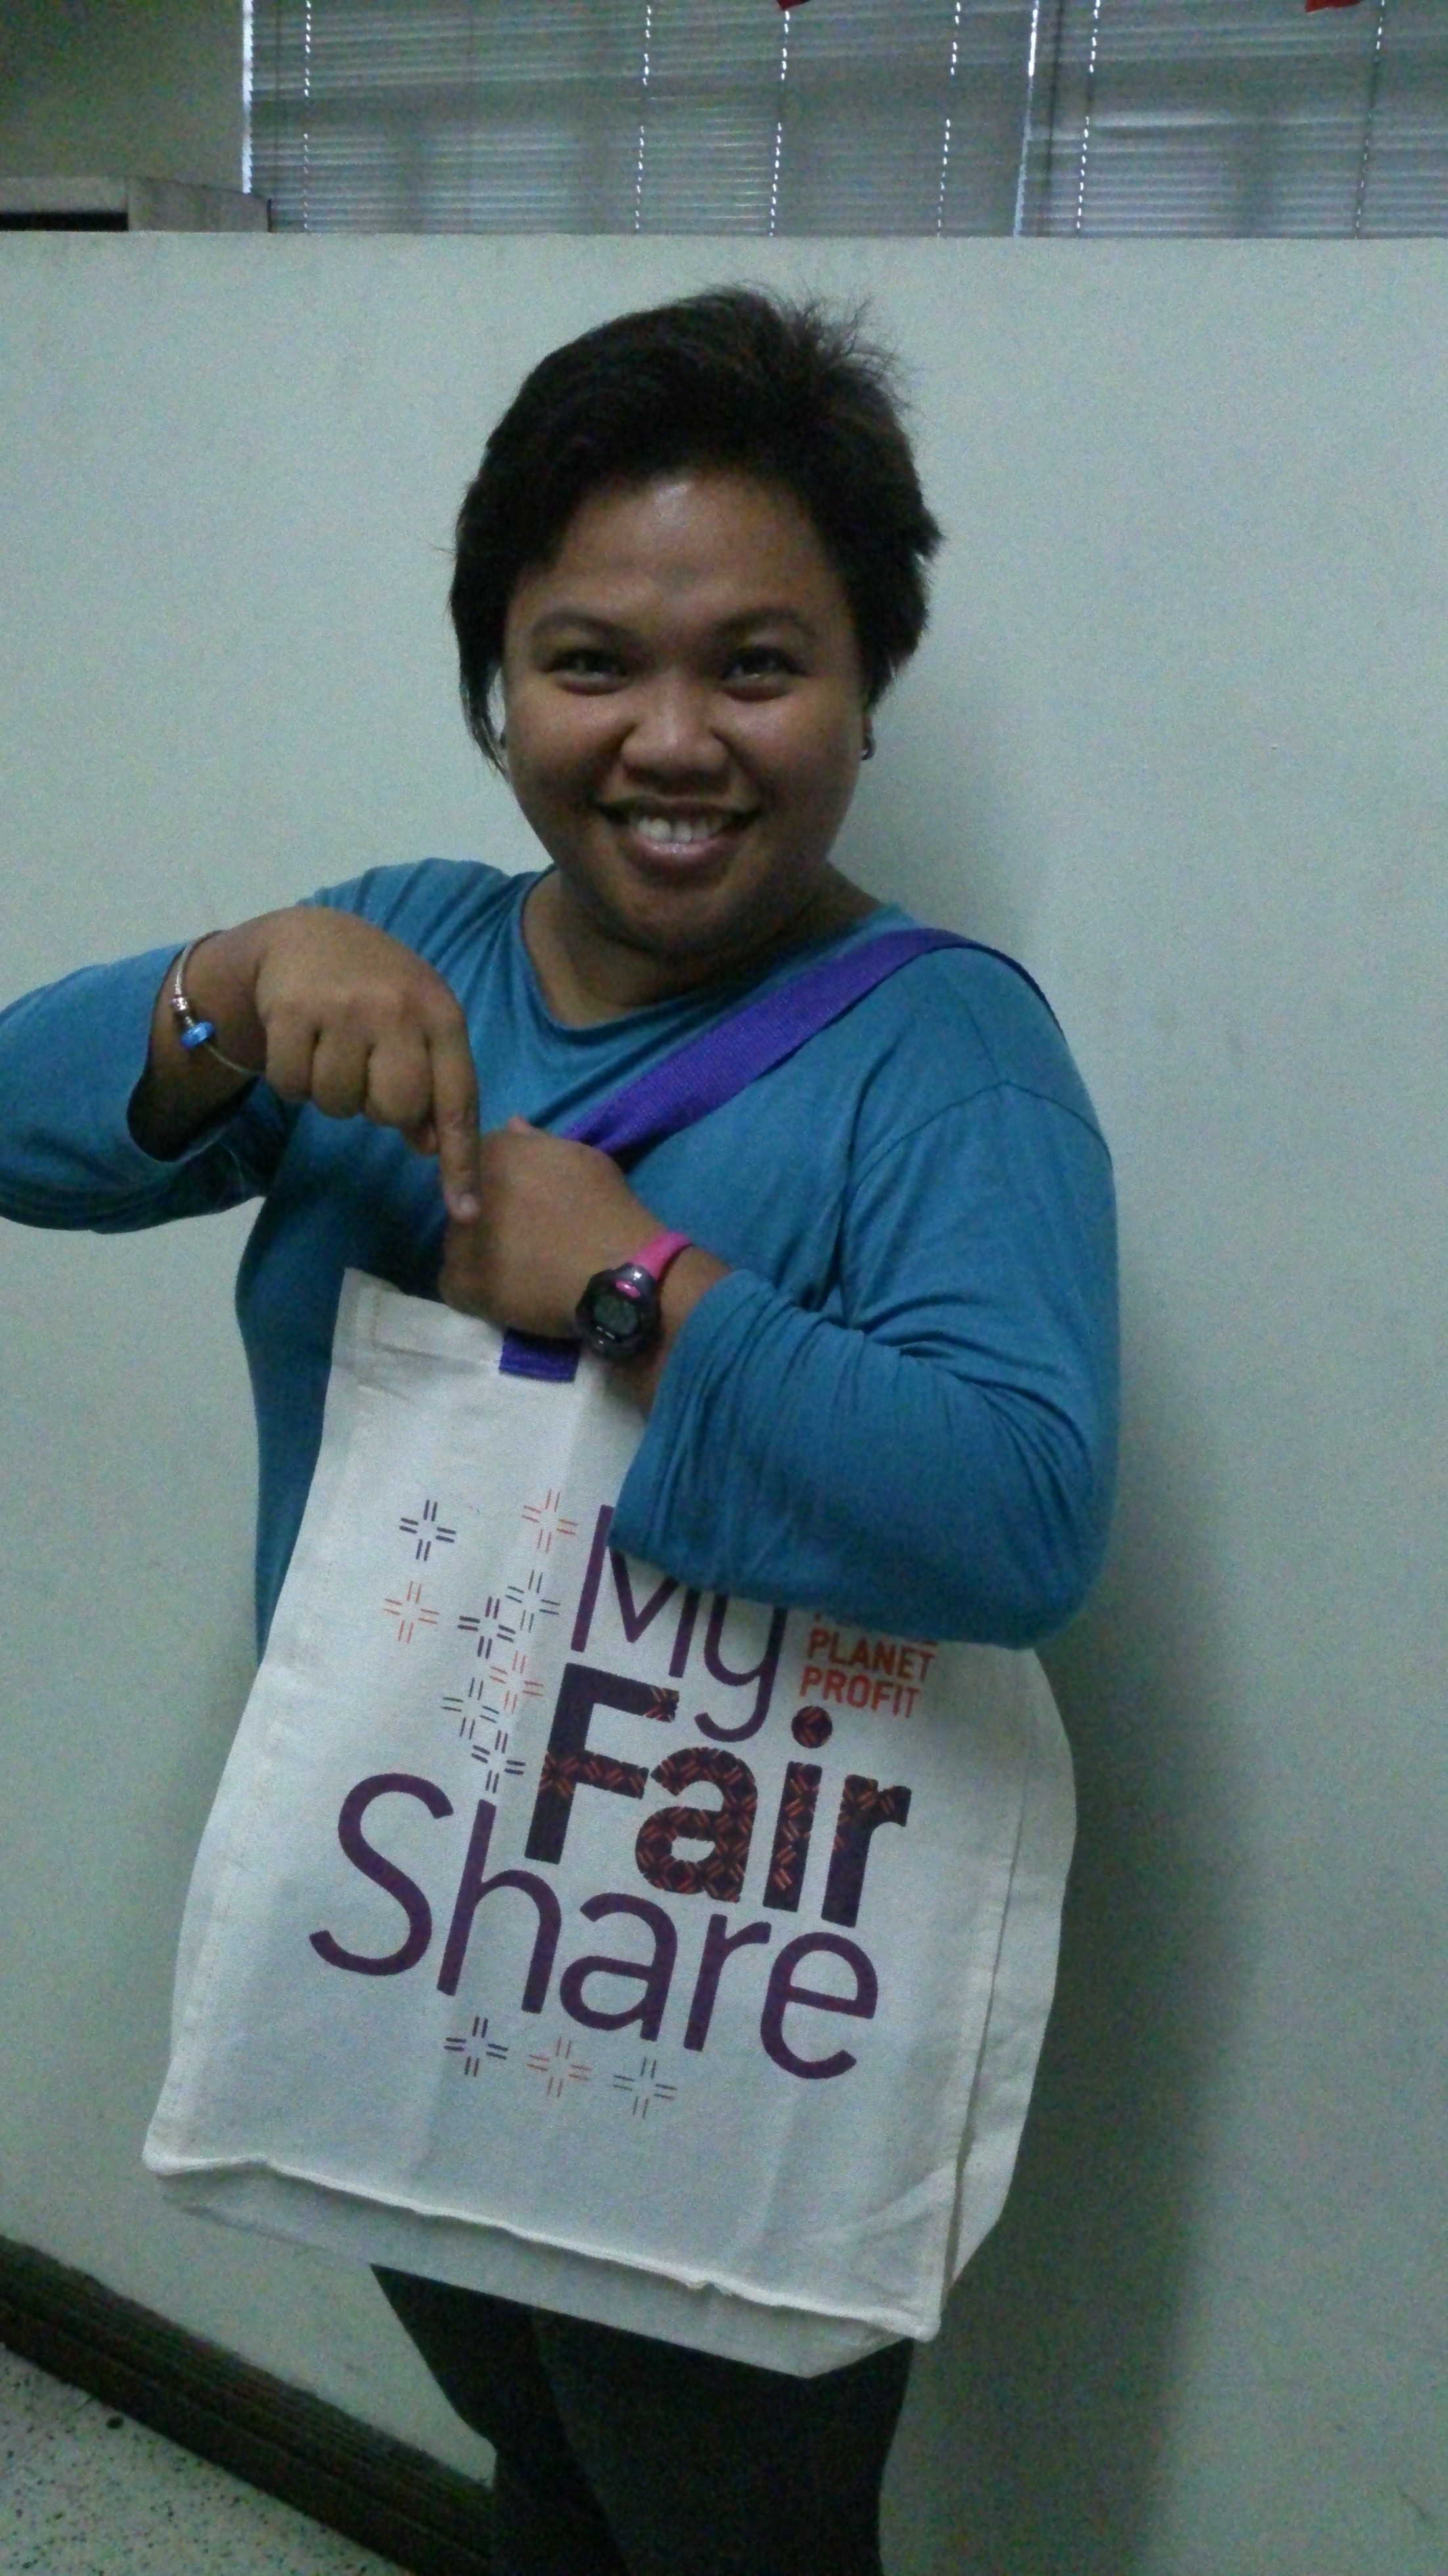 Globe My Fair Share Bag - 2